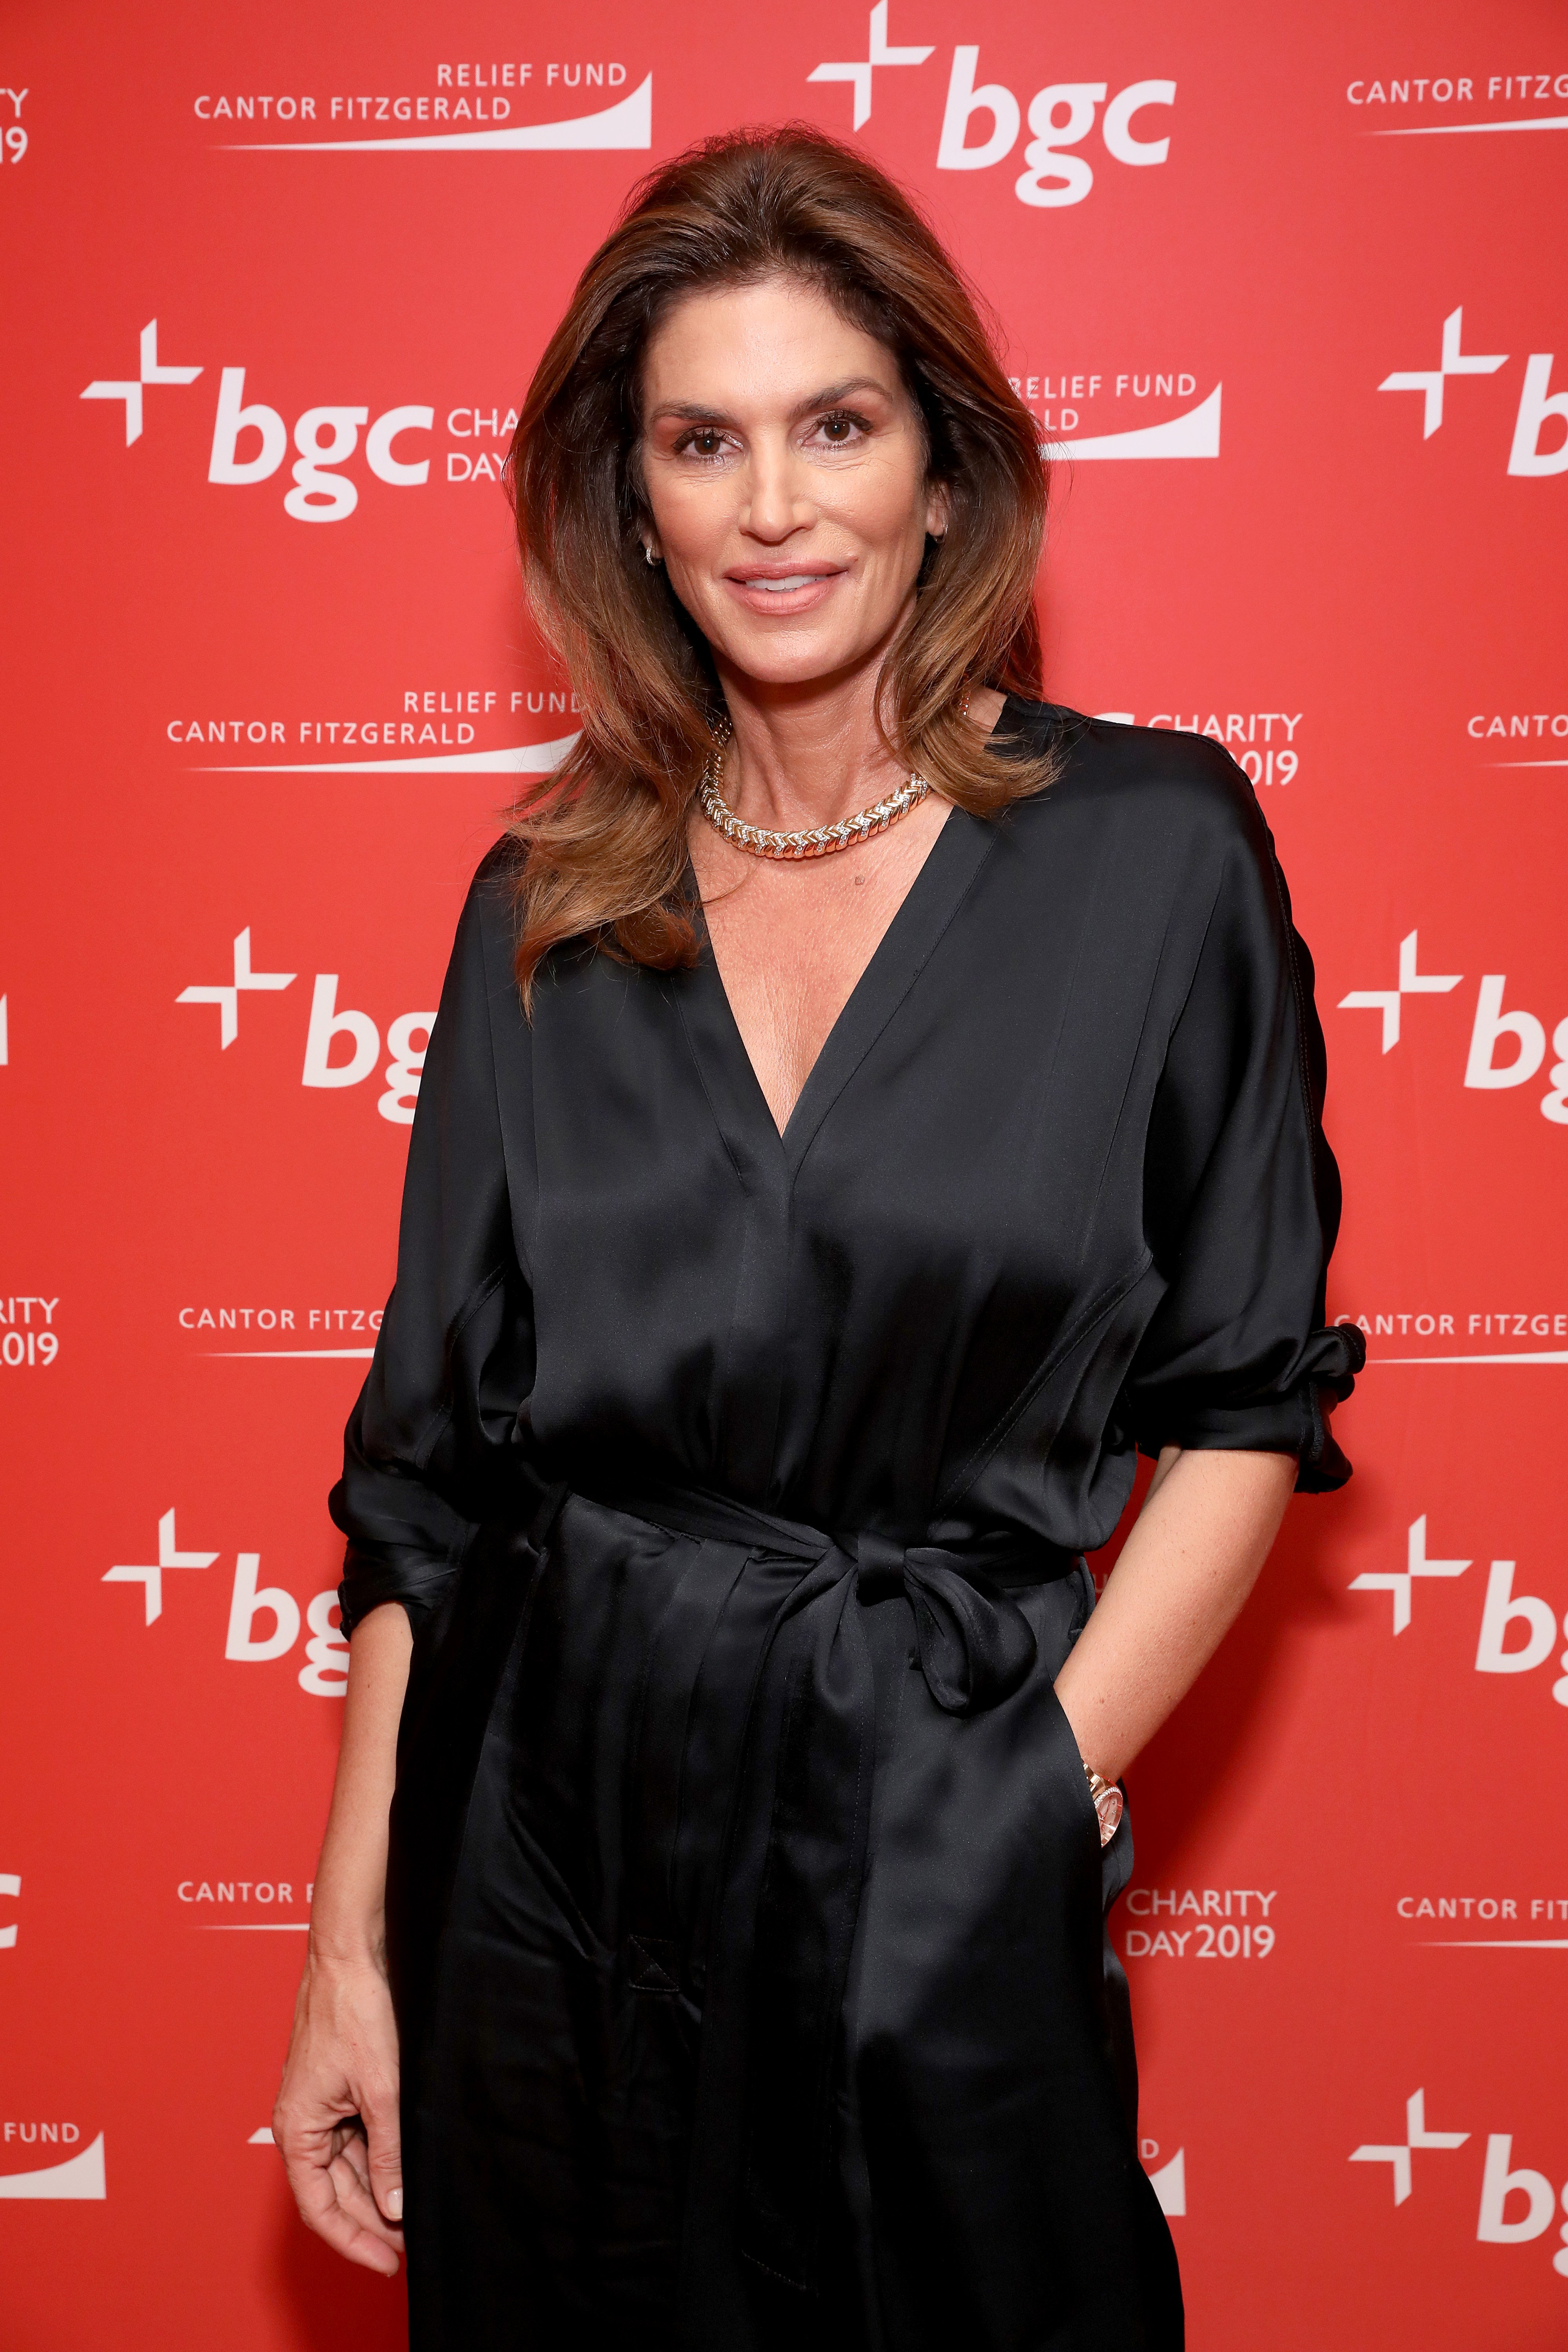 Cindy Crawford attends Annual Charity Day Hosted By Cantor Fitzgerald, BGC and GFI - BGC Office - Arrivals on September 11, 2019, in New York City. | Source: Getty Images.